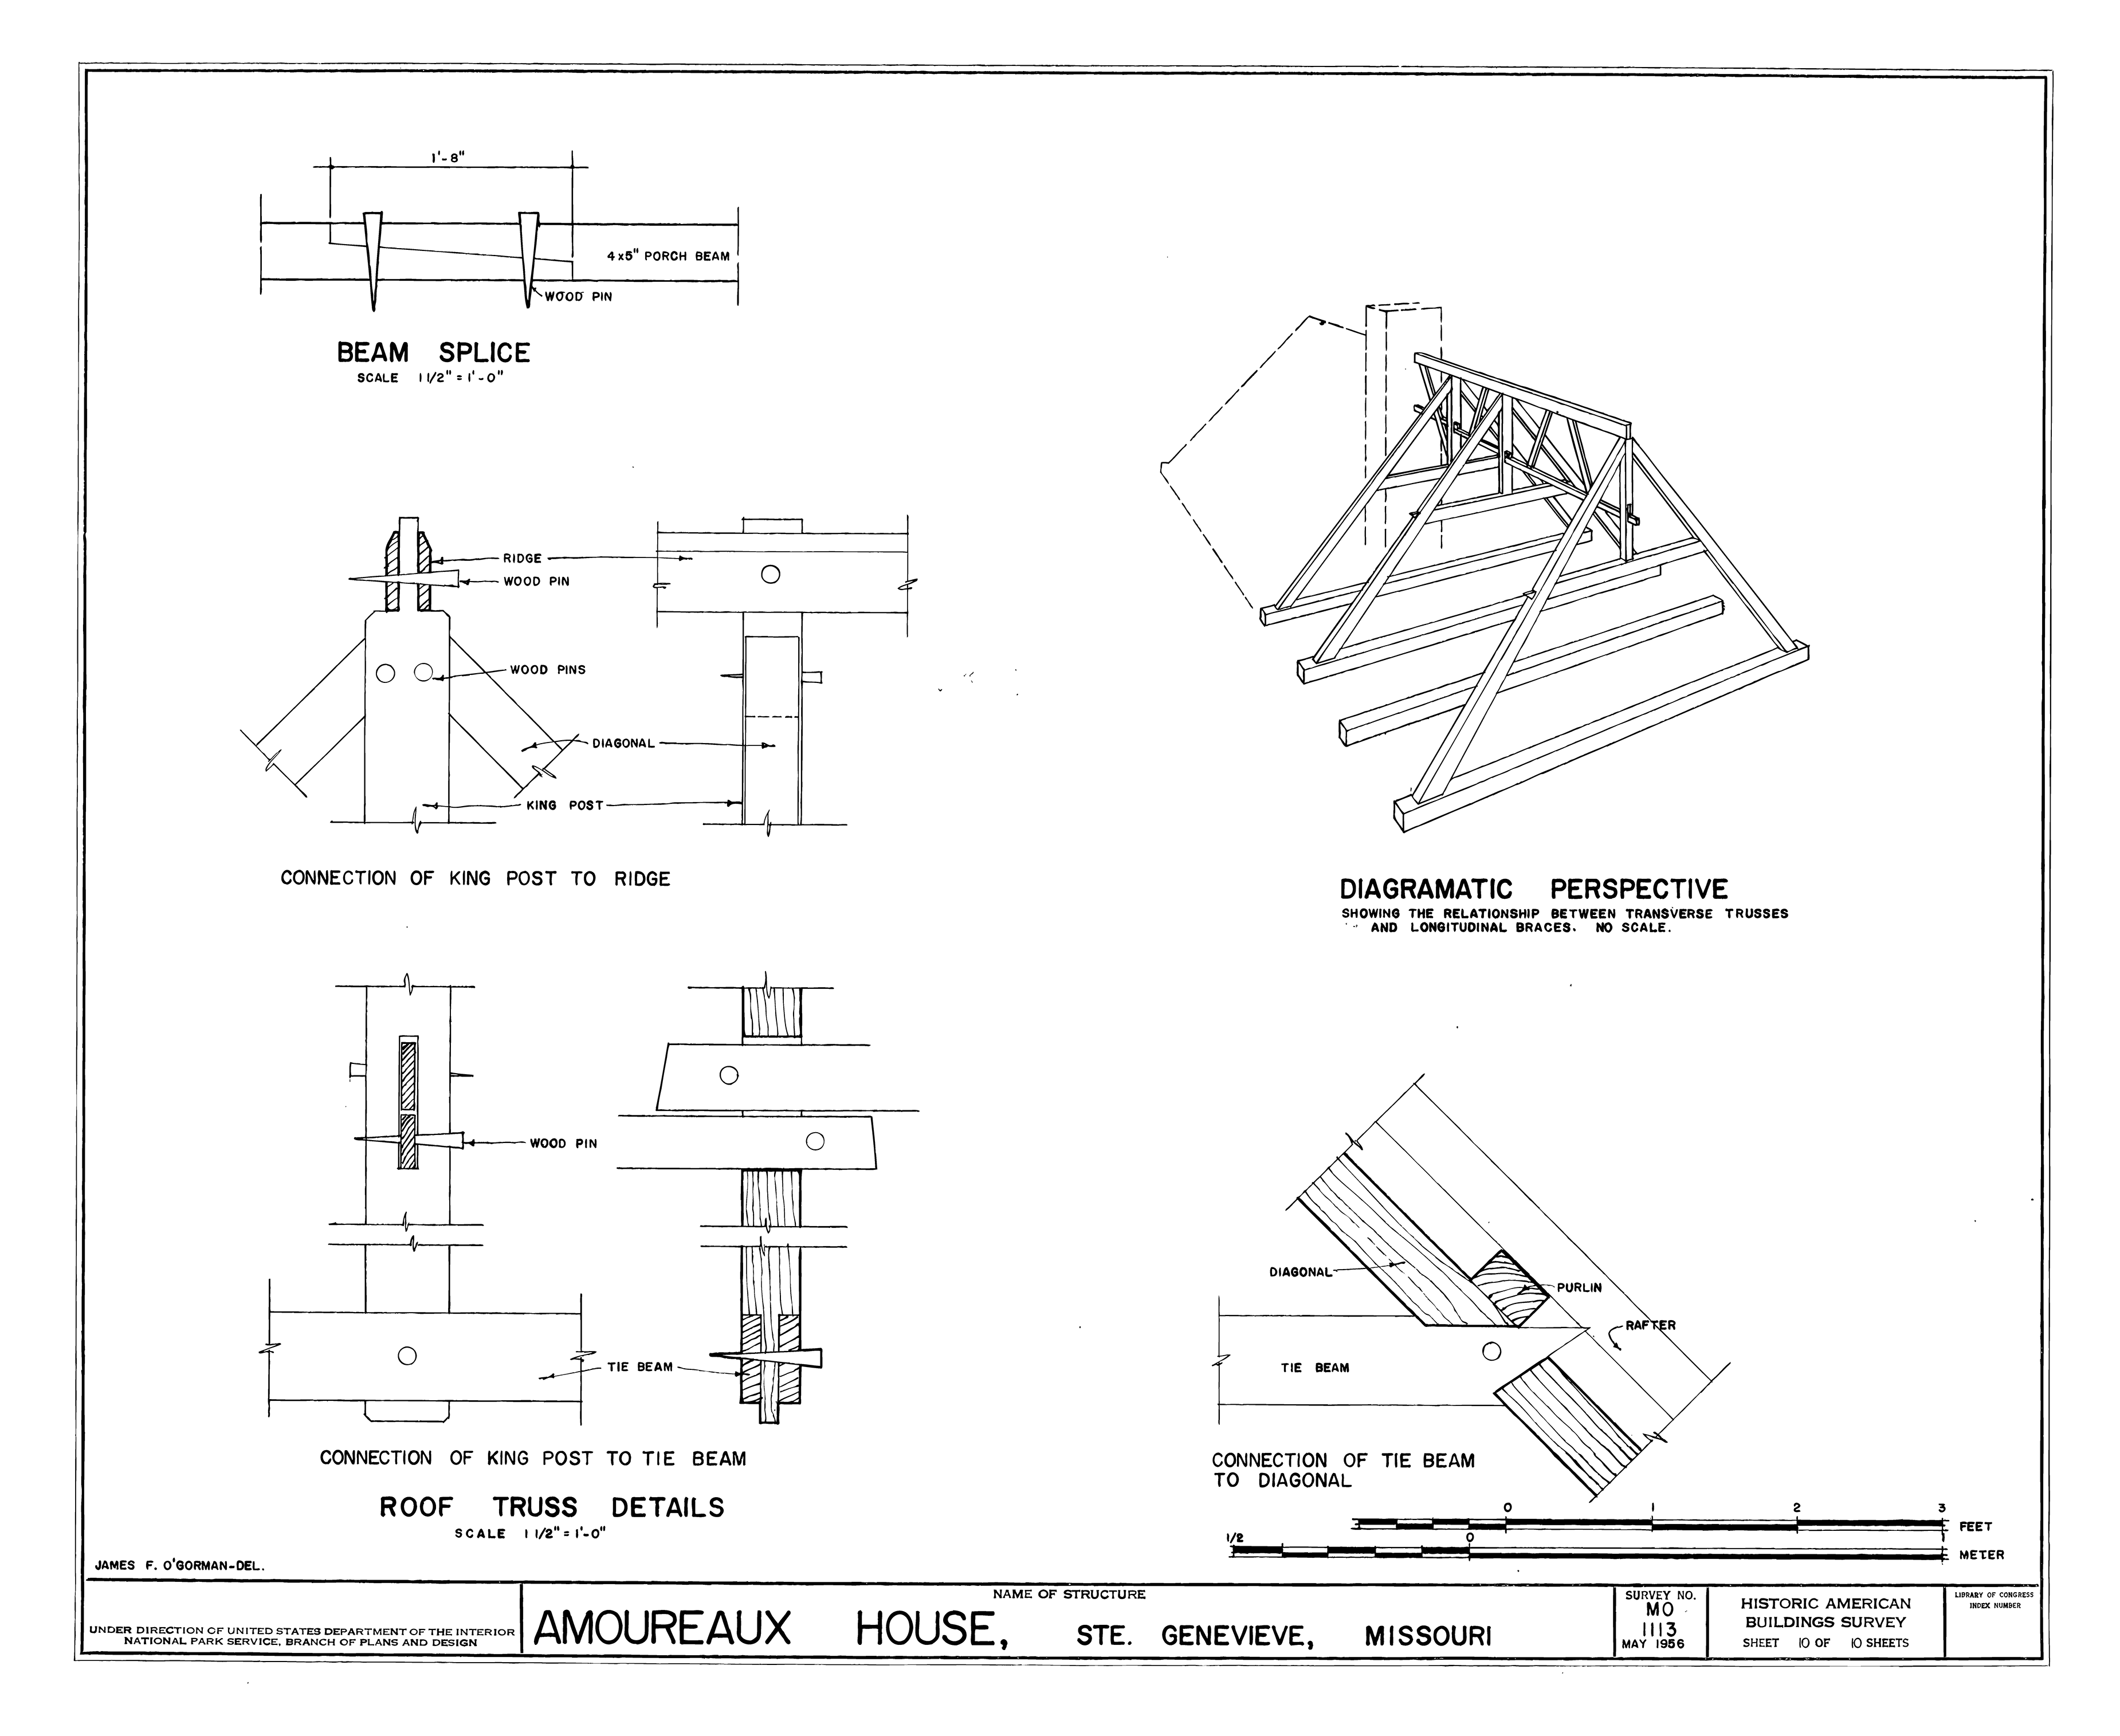 File Drawing Of The Norman Truss Of The Amoureaux House In